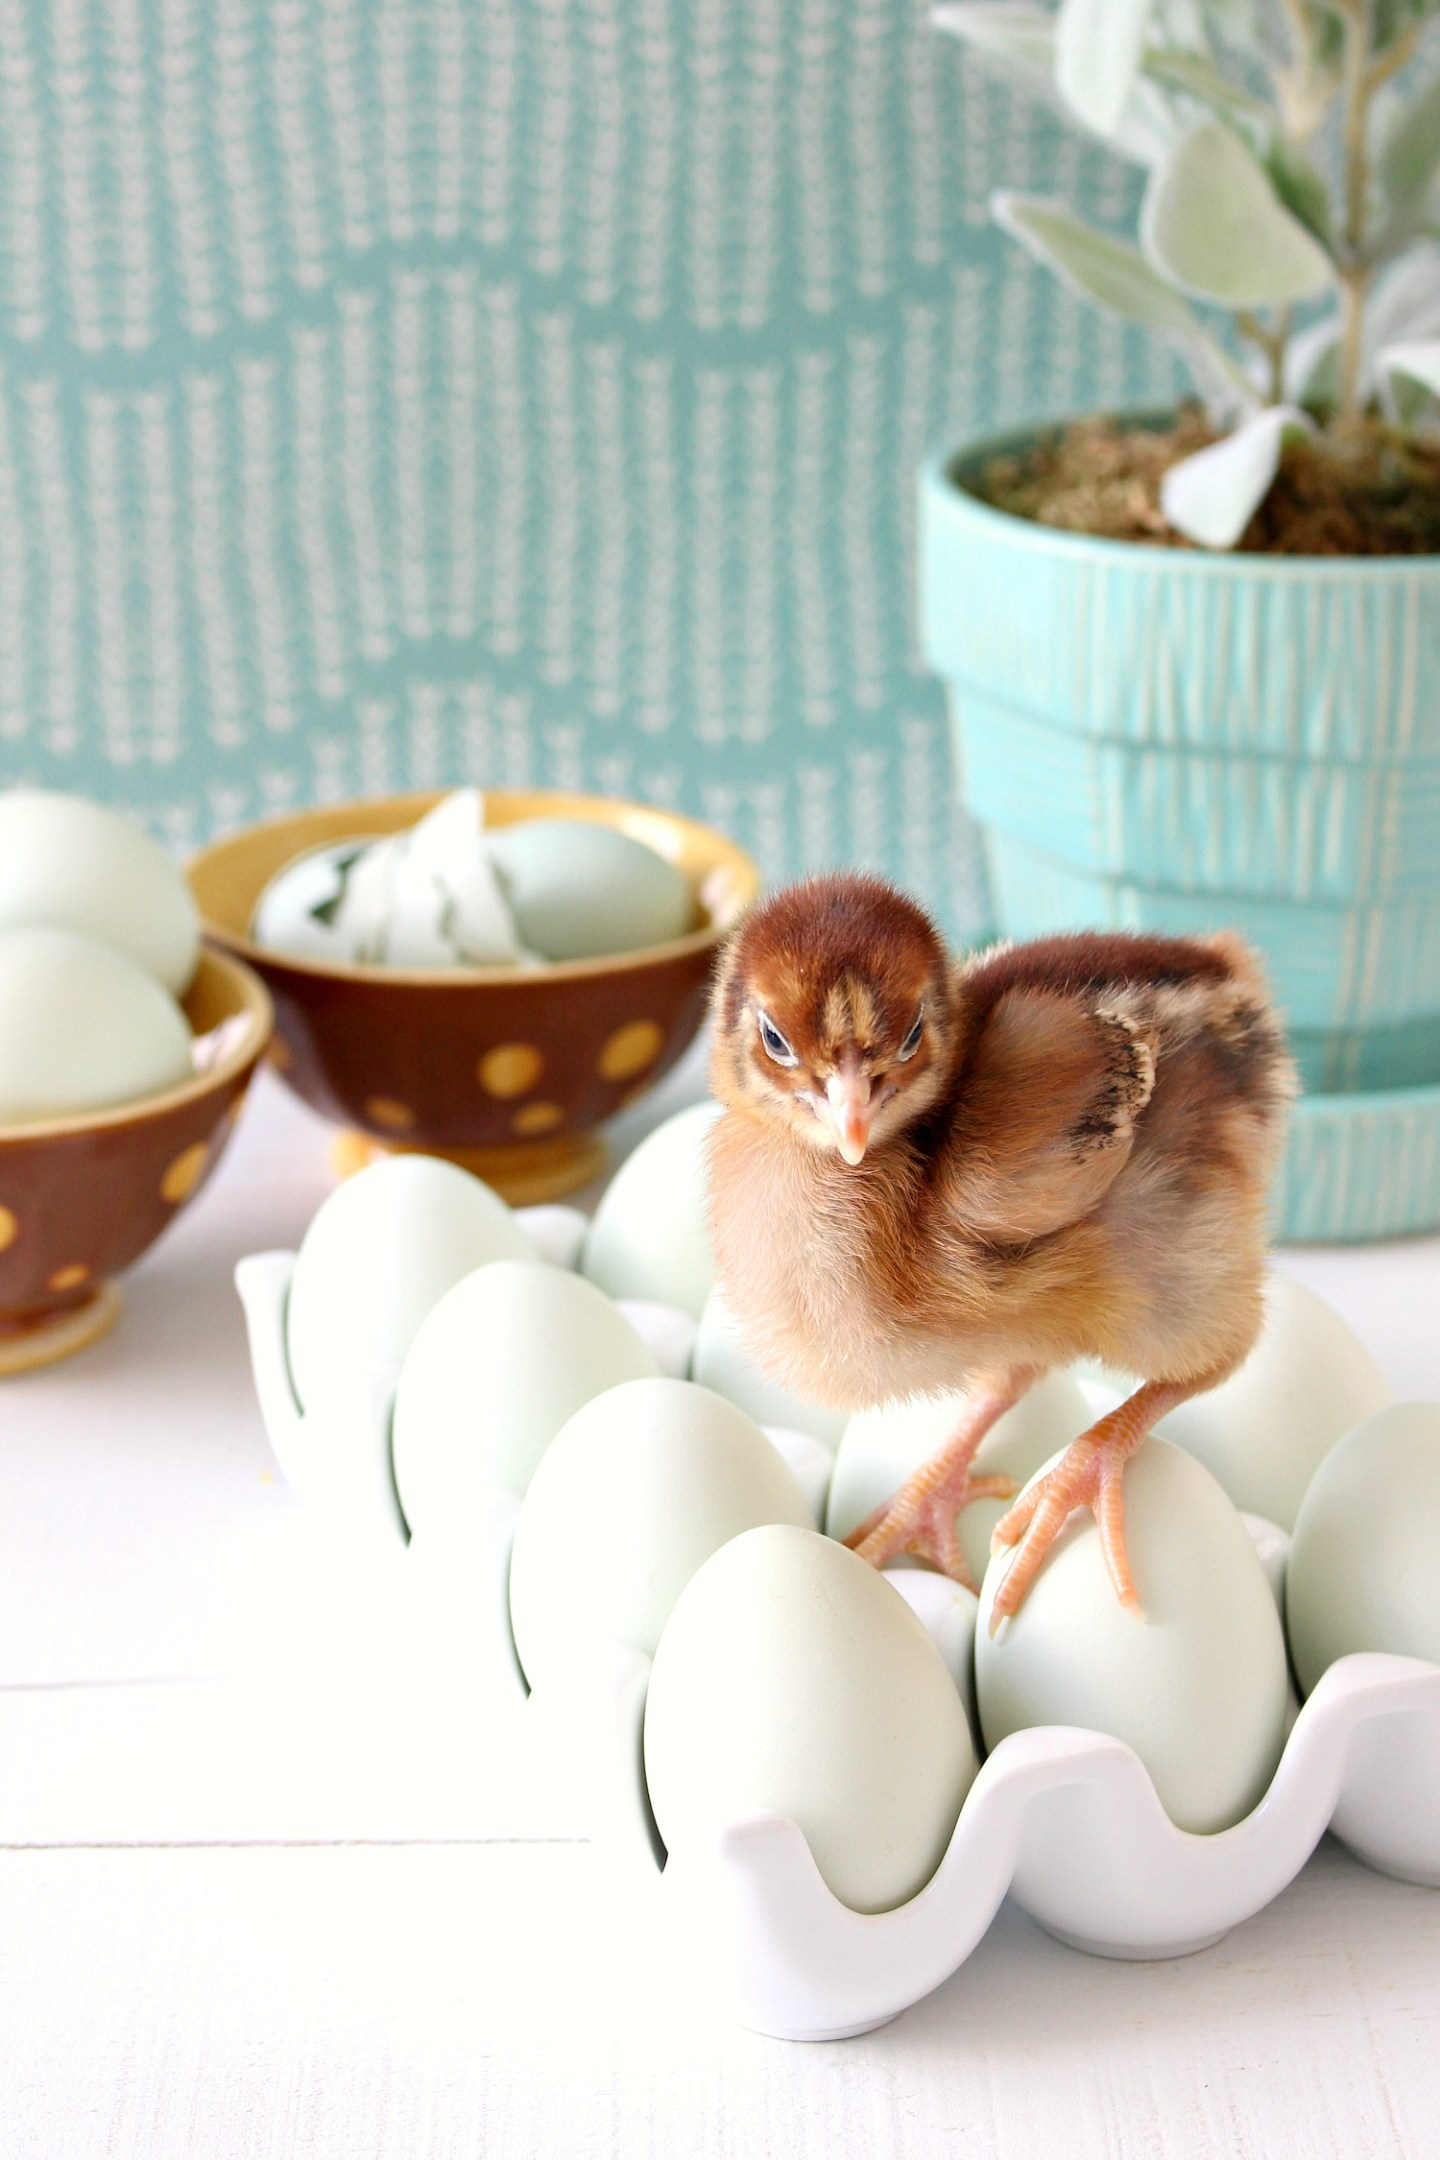 Spring Chick Photo Shoot